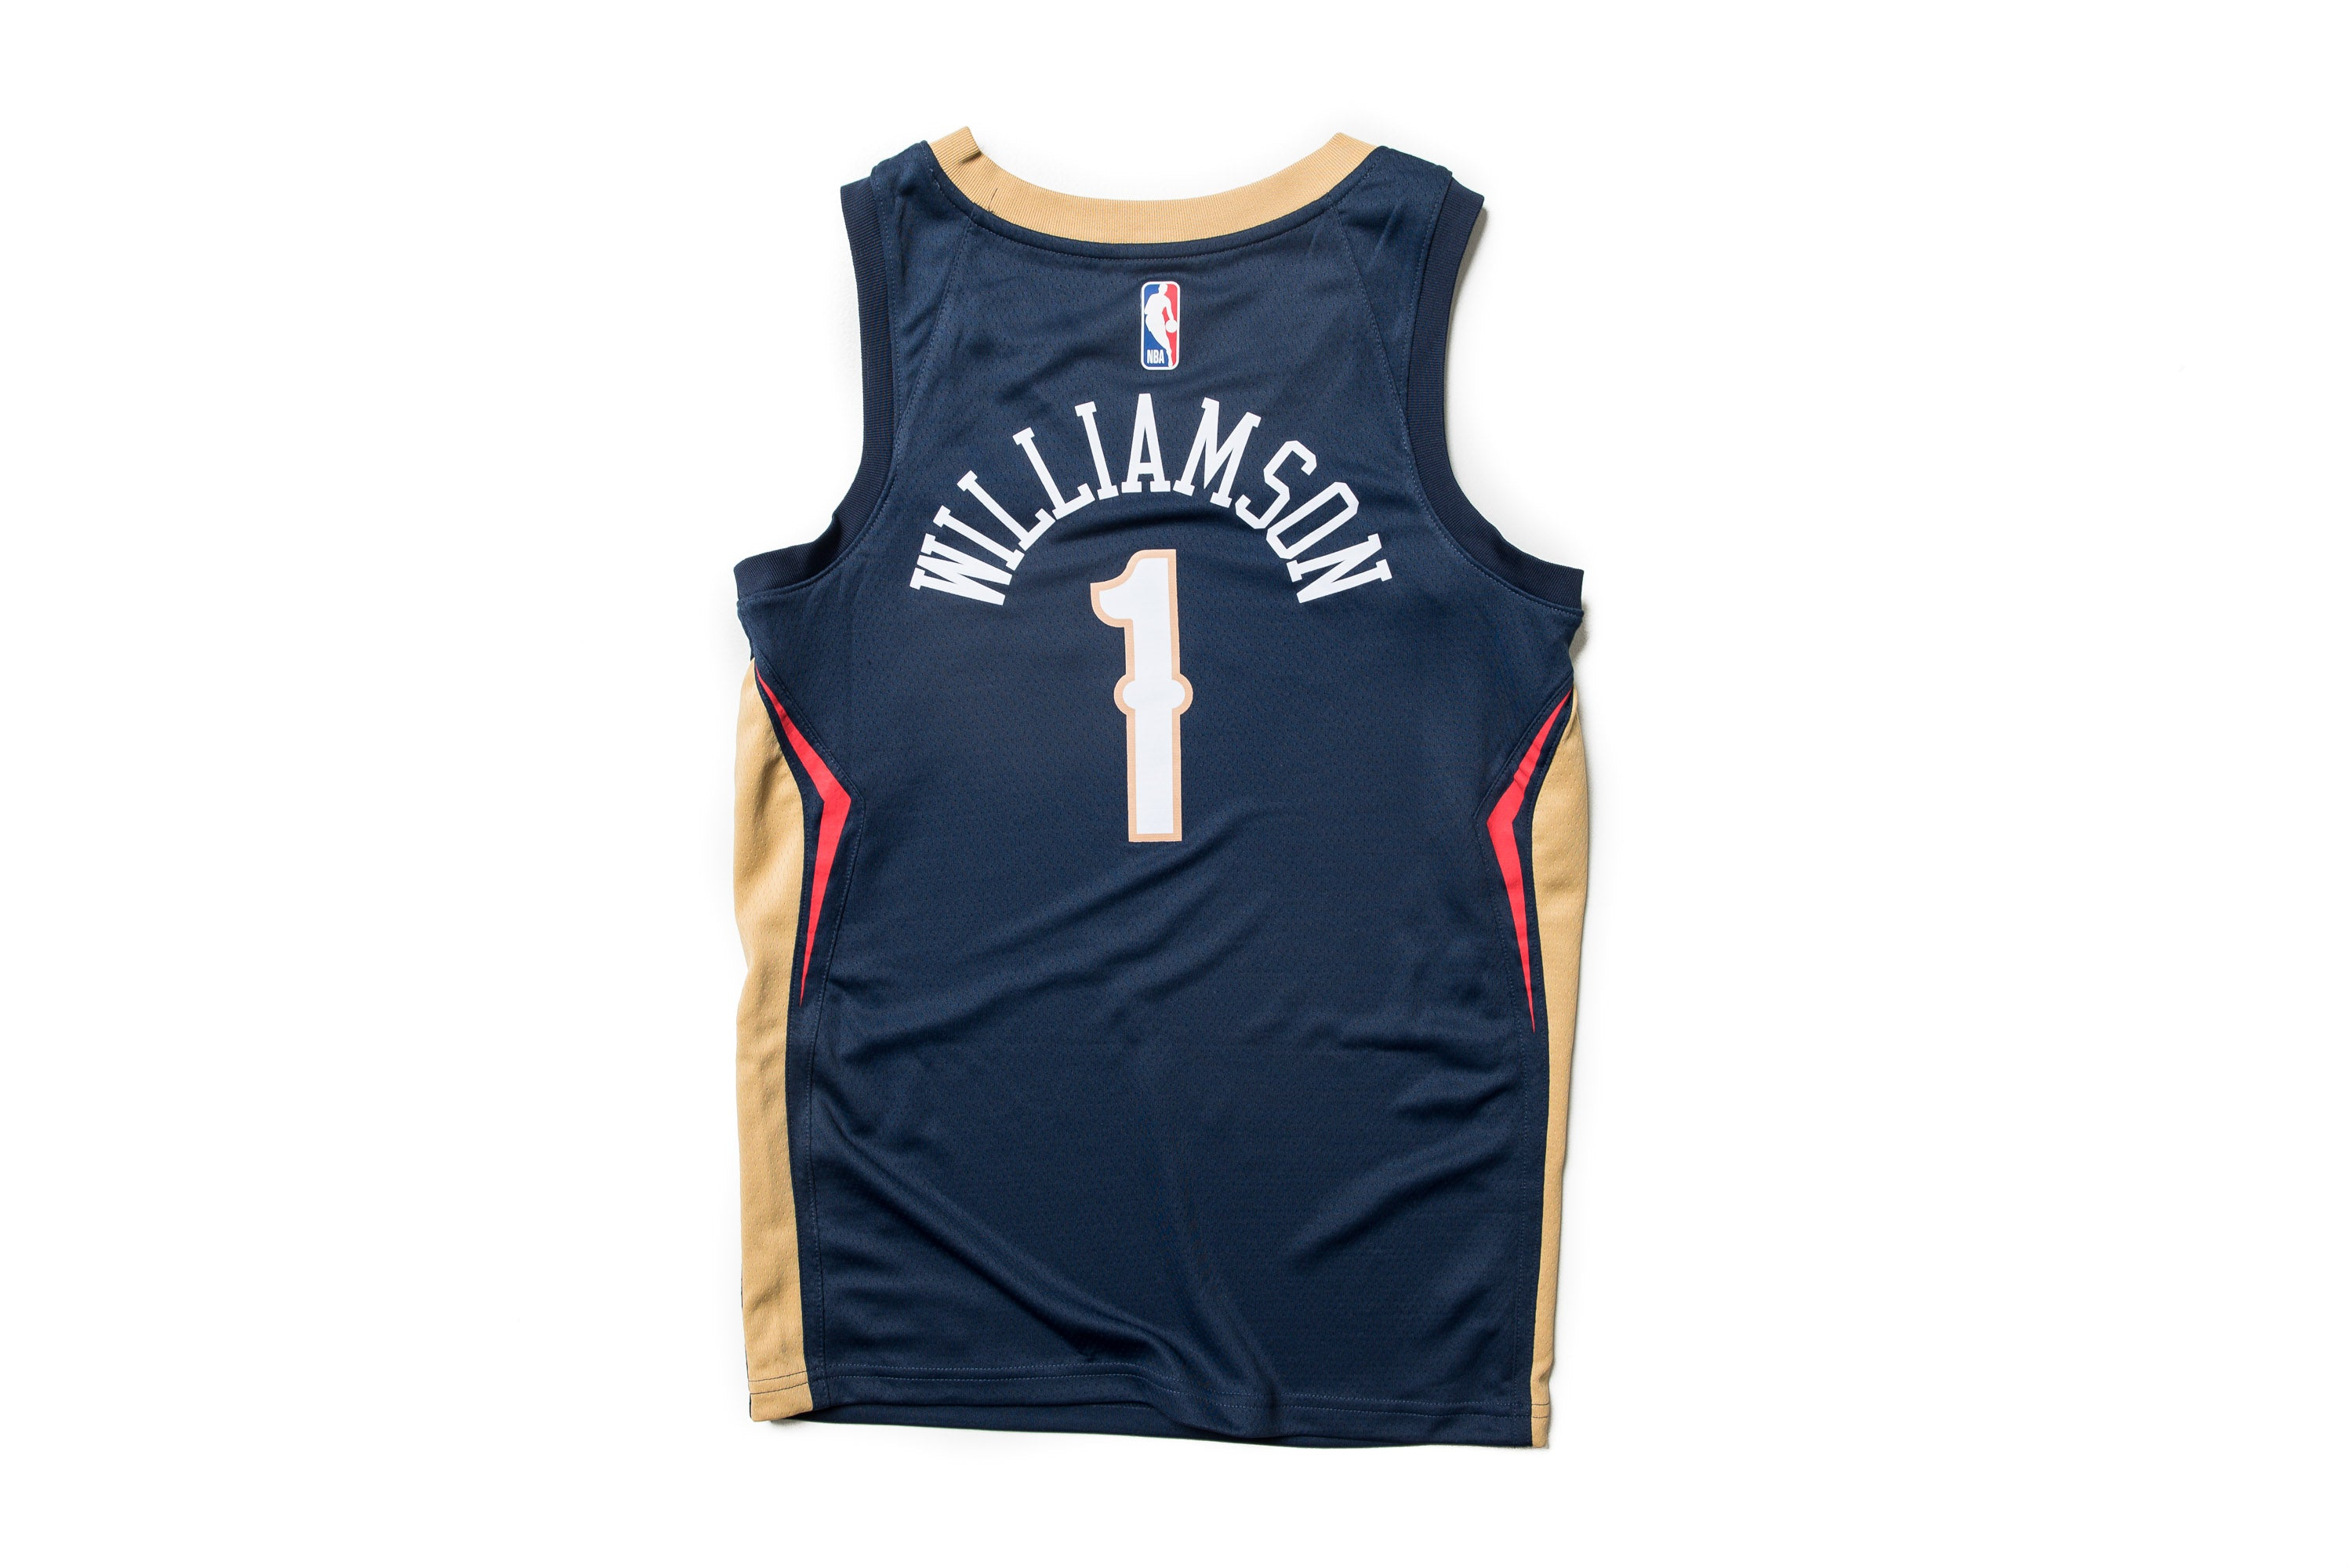 Nike Nba Zion Williamson New Orleans Pelicans Alternate Swingman Jersey Navy